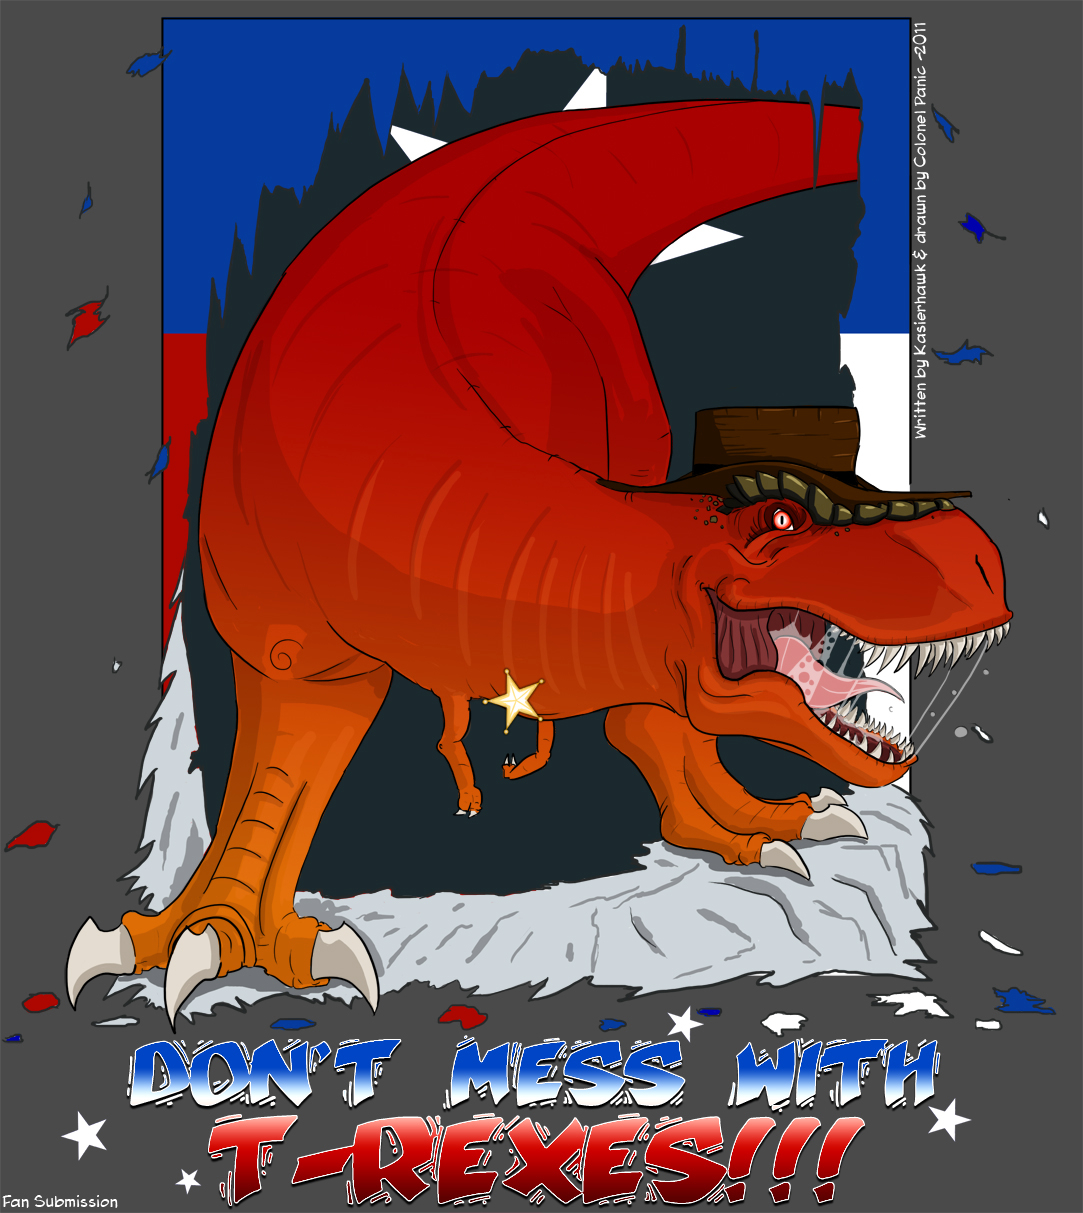 Texas + Dinosaurs = Awesome